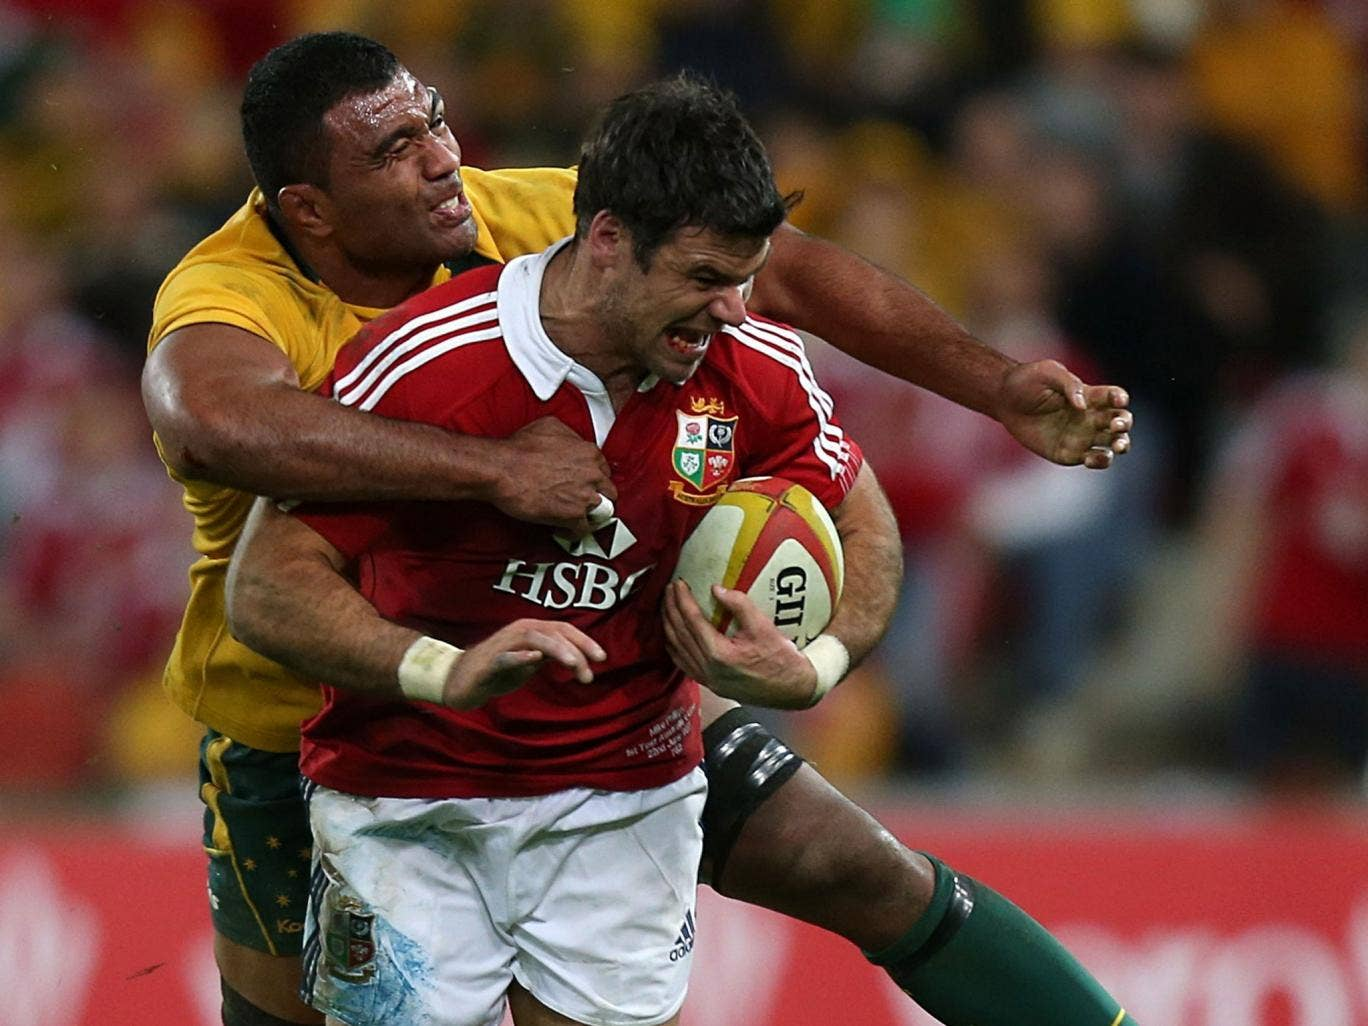 Mike Phillips is a Gatland favourite but has been dropped